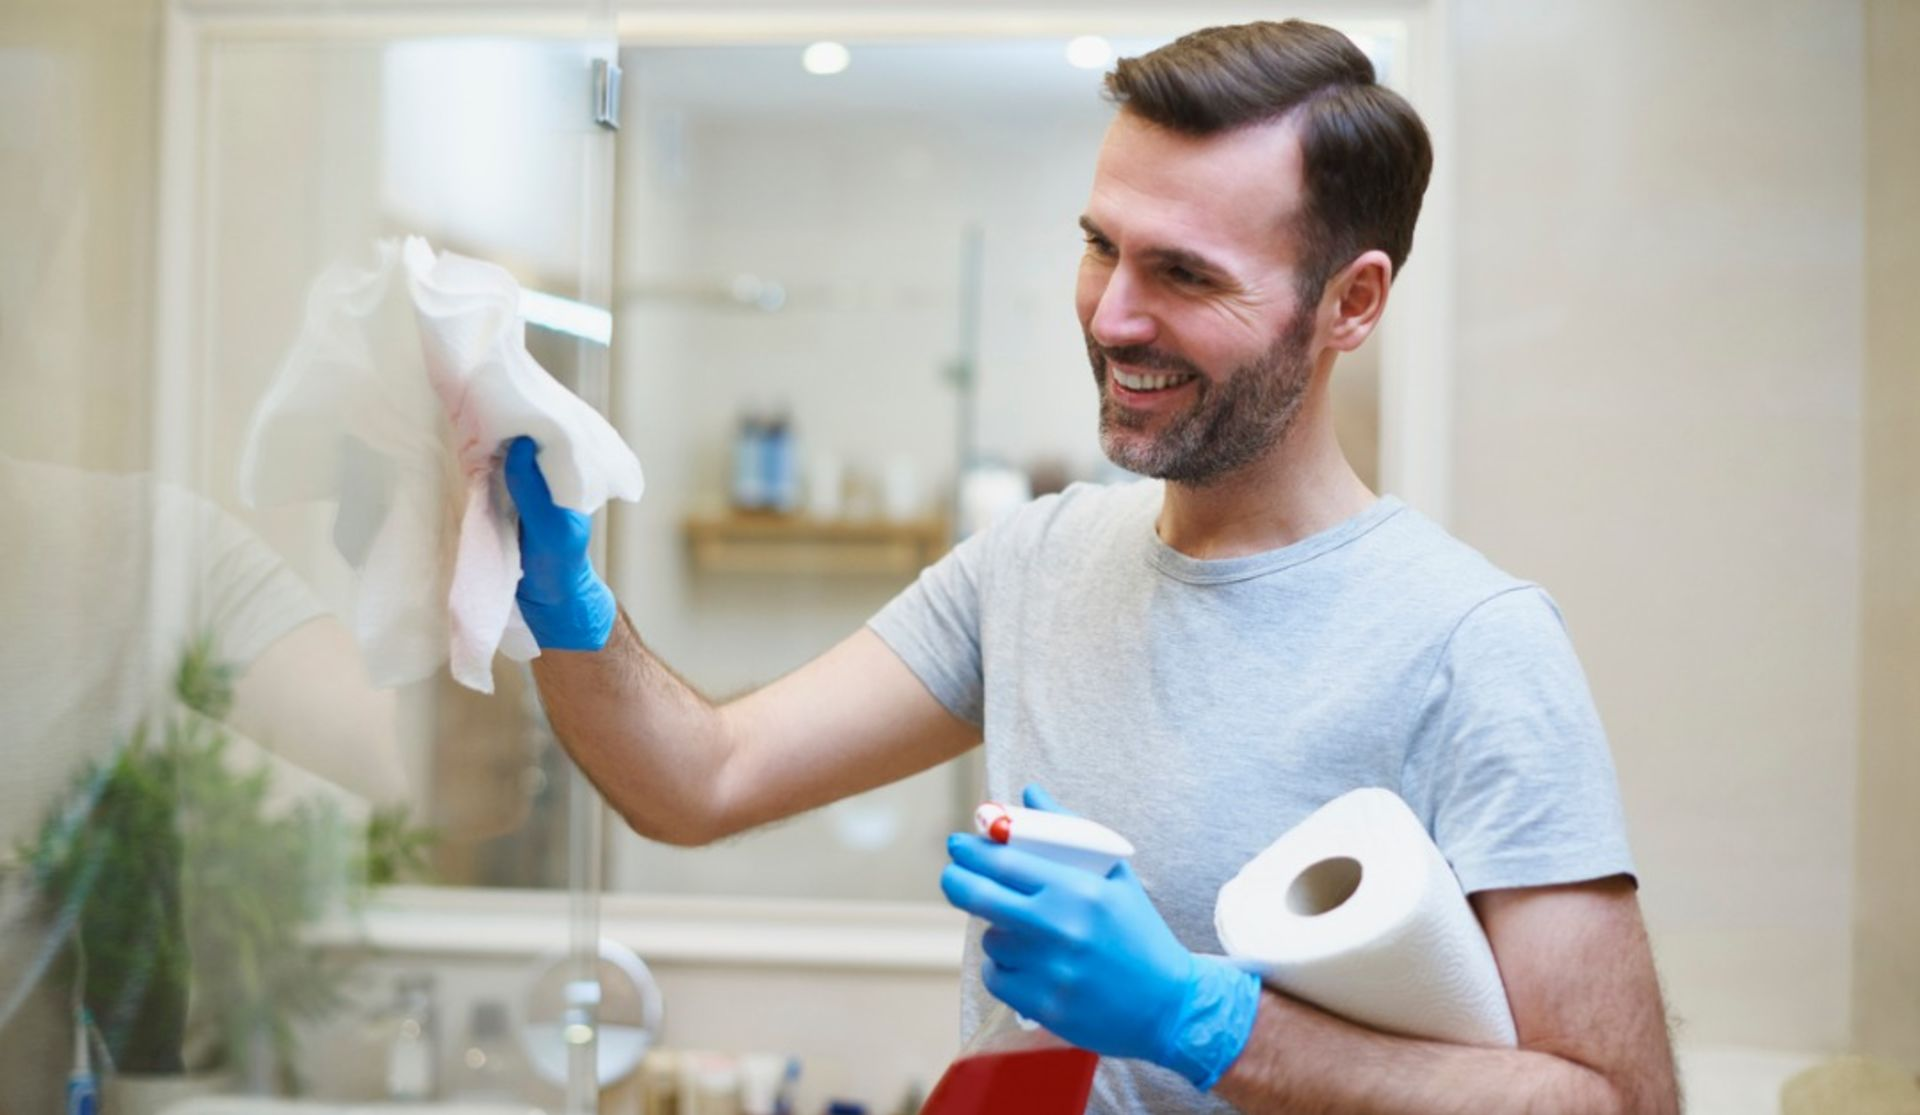 New Home? Prep the Bathroom First